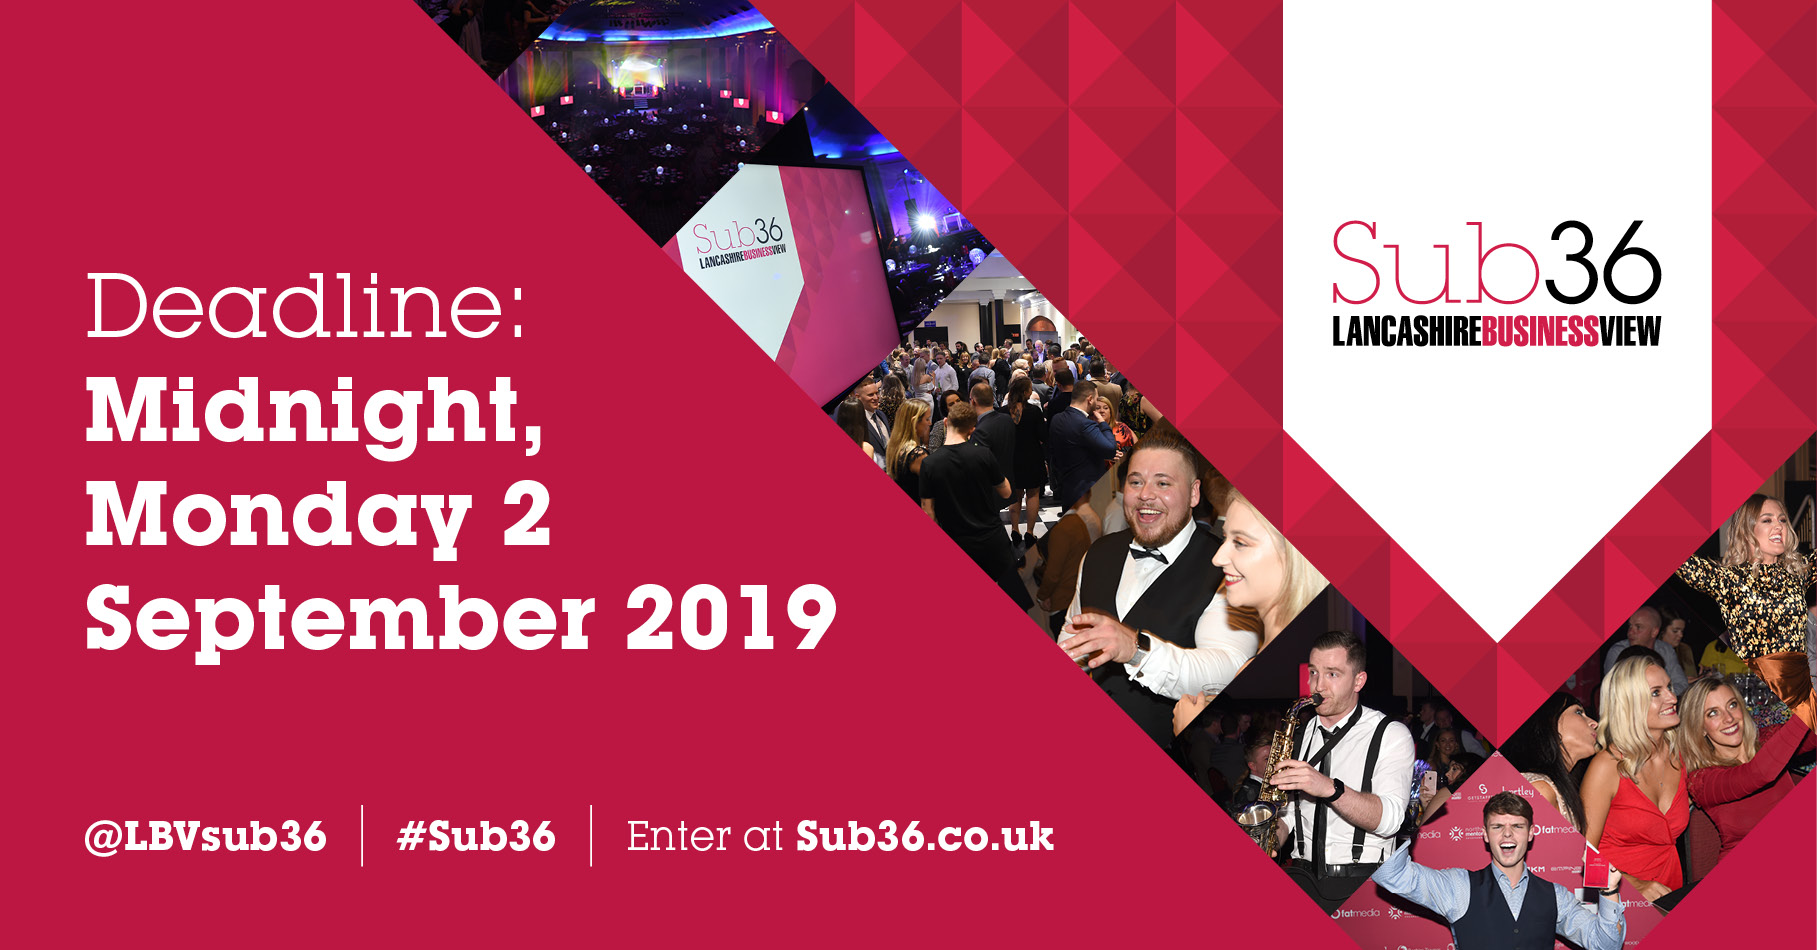 Sub36 Award Deadline for Entry